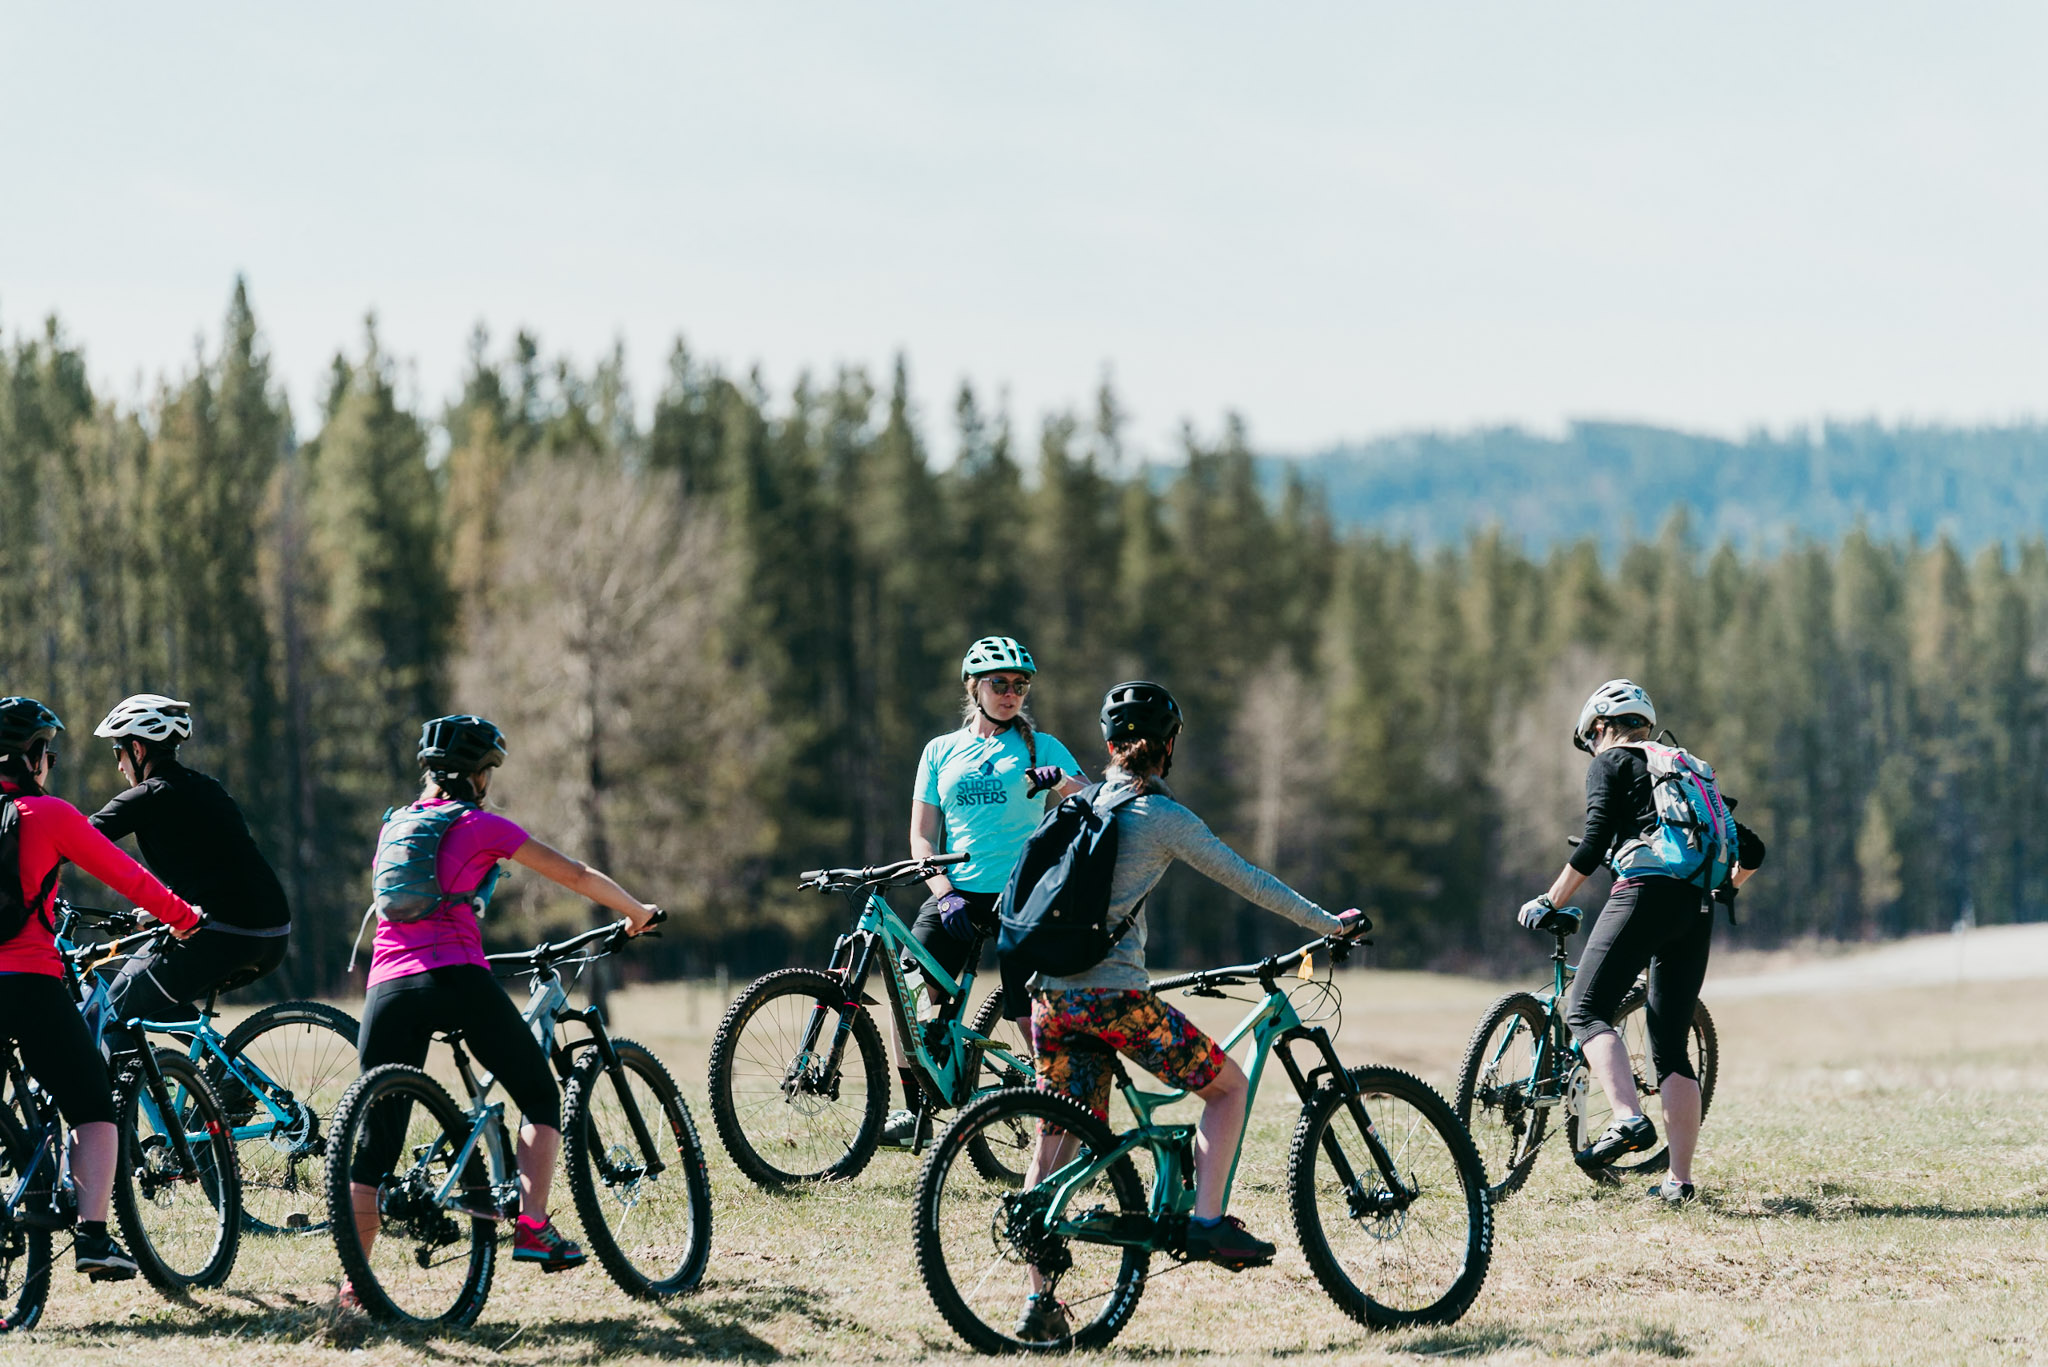 May 27, 2019 - Shred Sisters - Bragg Creek-15.jpg